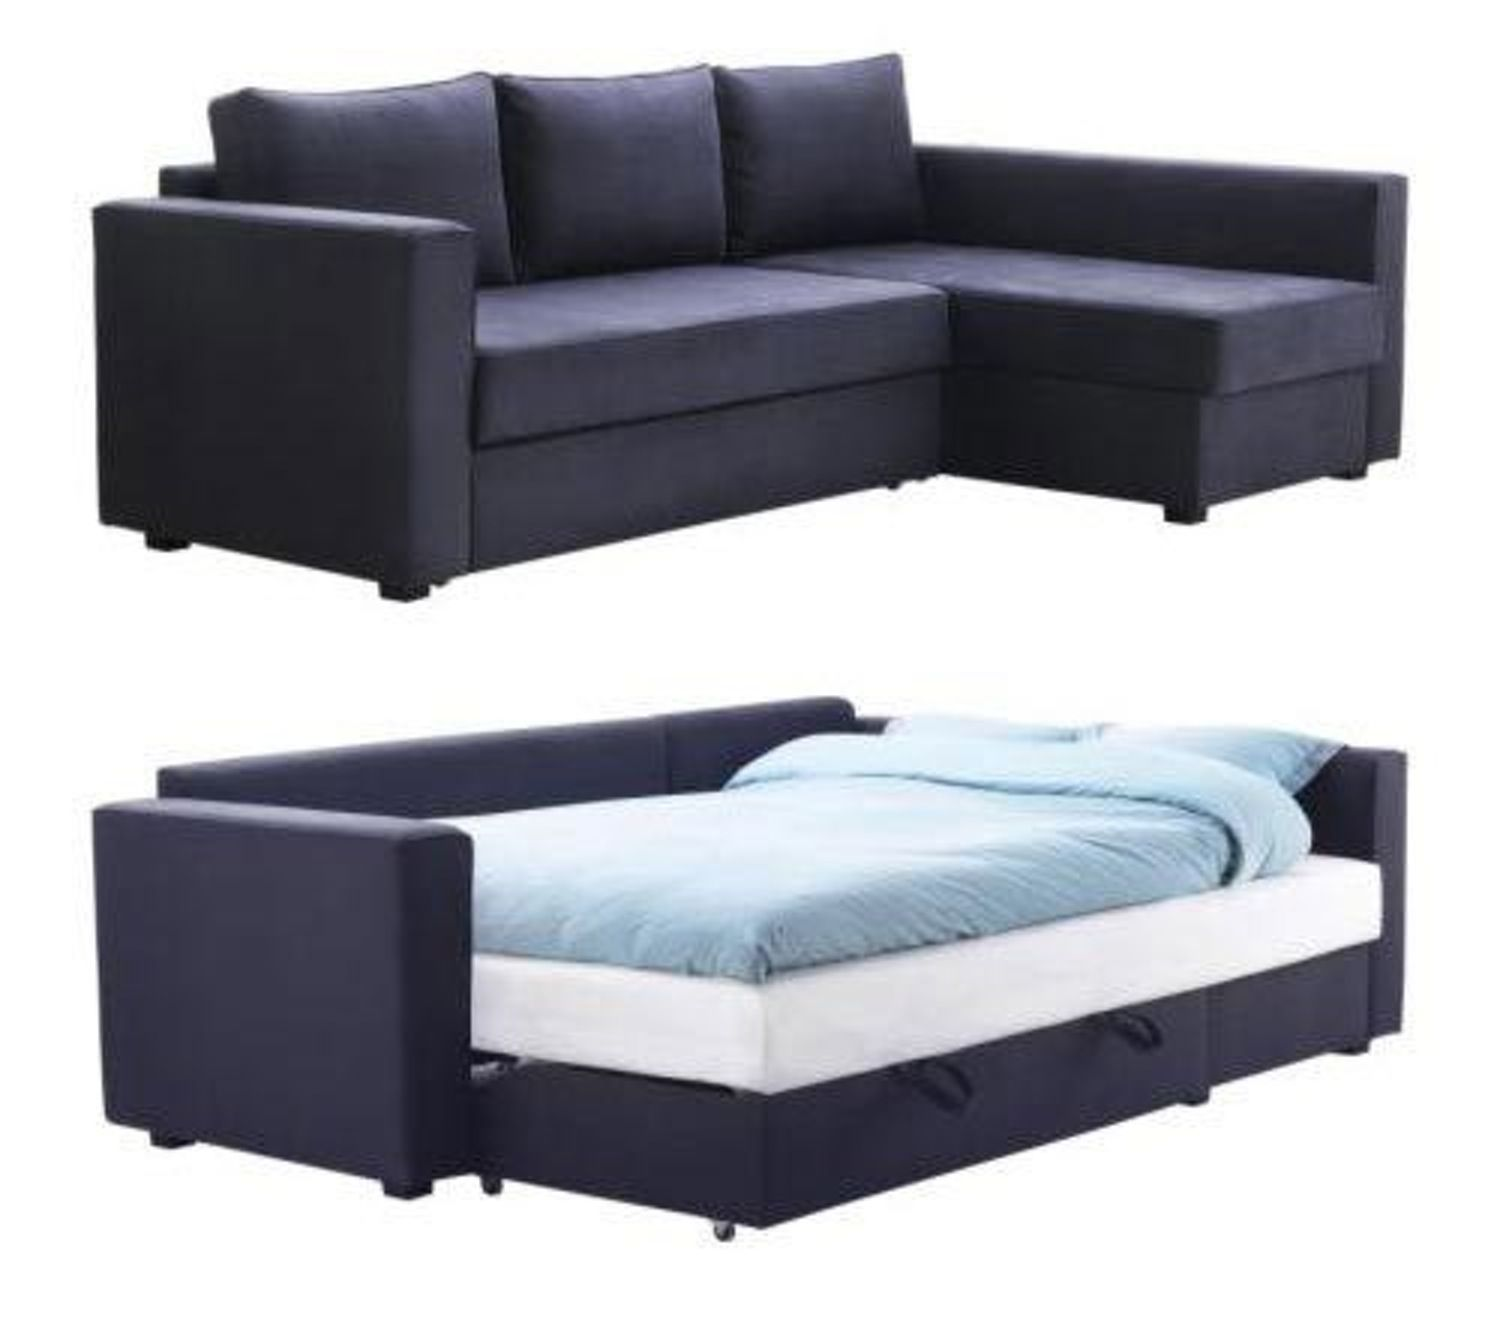 Chaise Sofa Bed Ikea Cheapest Sets Manstad Sectional Storage From Sleeper Of The Week